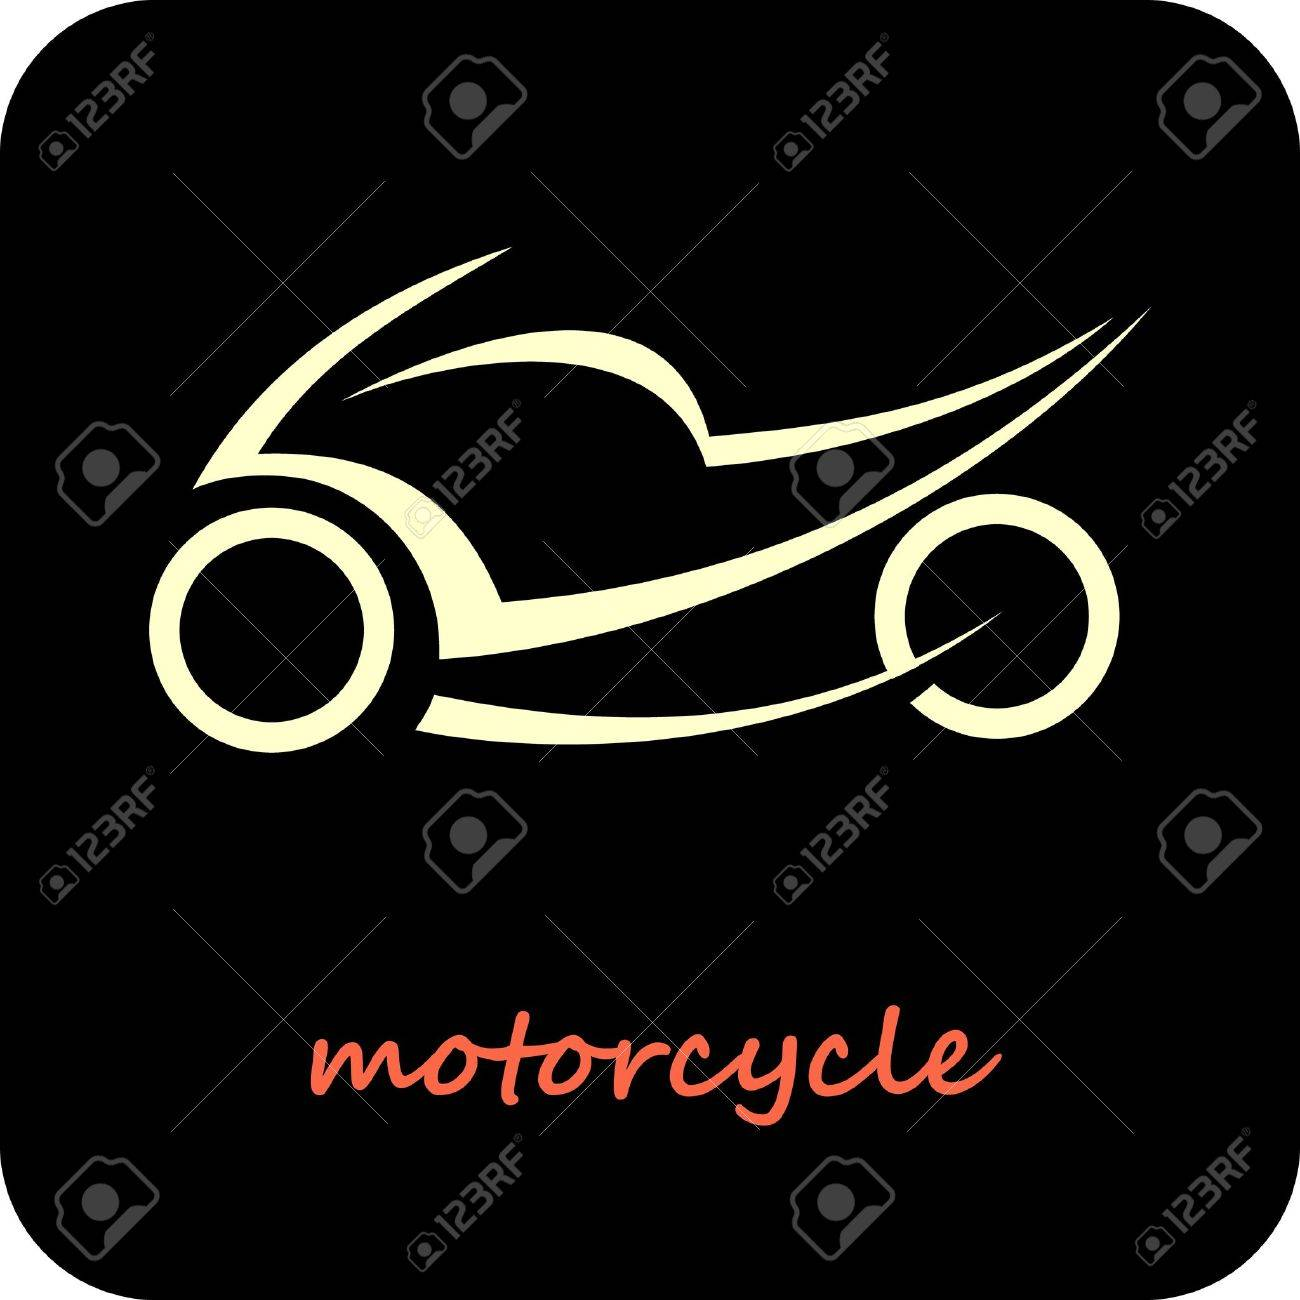 Sport Motorcycle - vector icon. Outline on black. Fast sportbike. Can be used as logotype. Stock Vector - 10677489